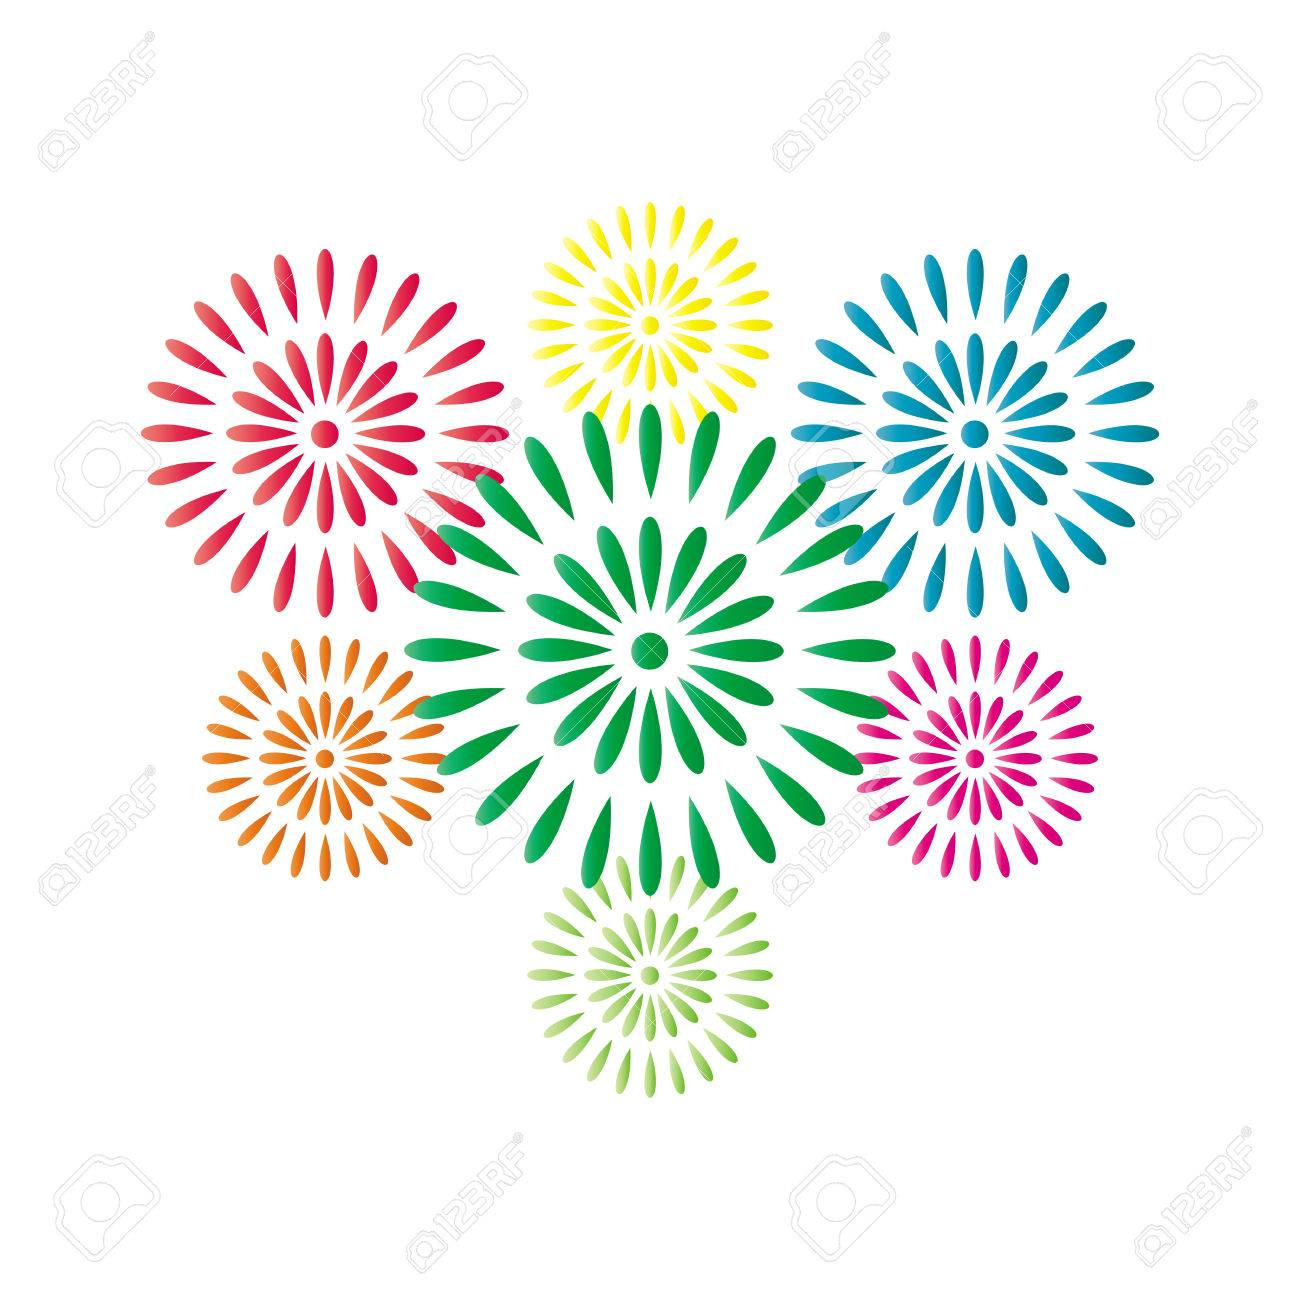 fireworks colorful isolated on white background beautiful design for new year anniversary celebration and